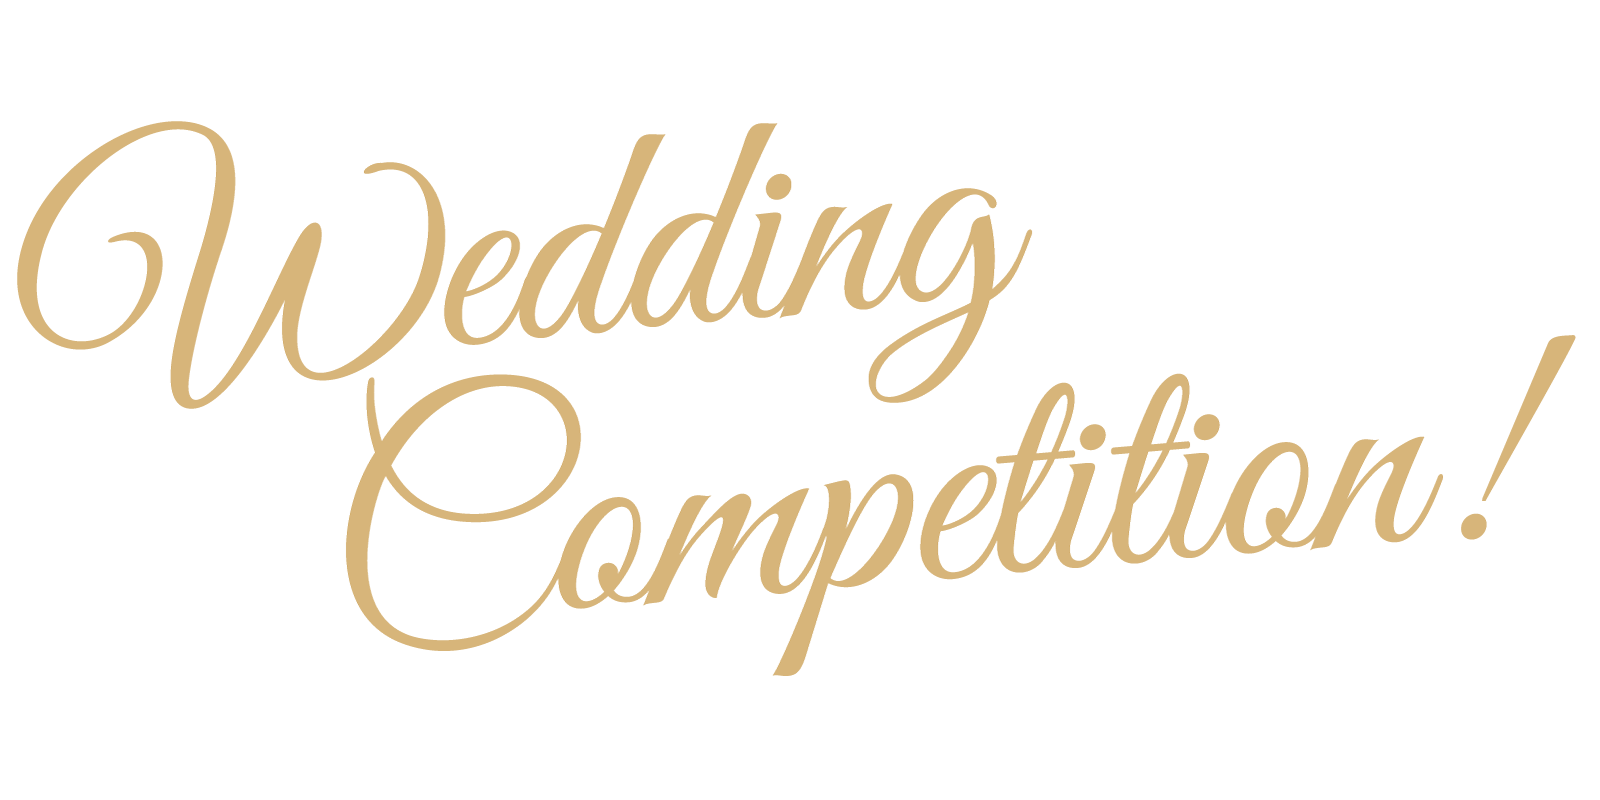 Carberry Tower Wedding Competition